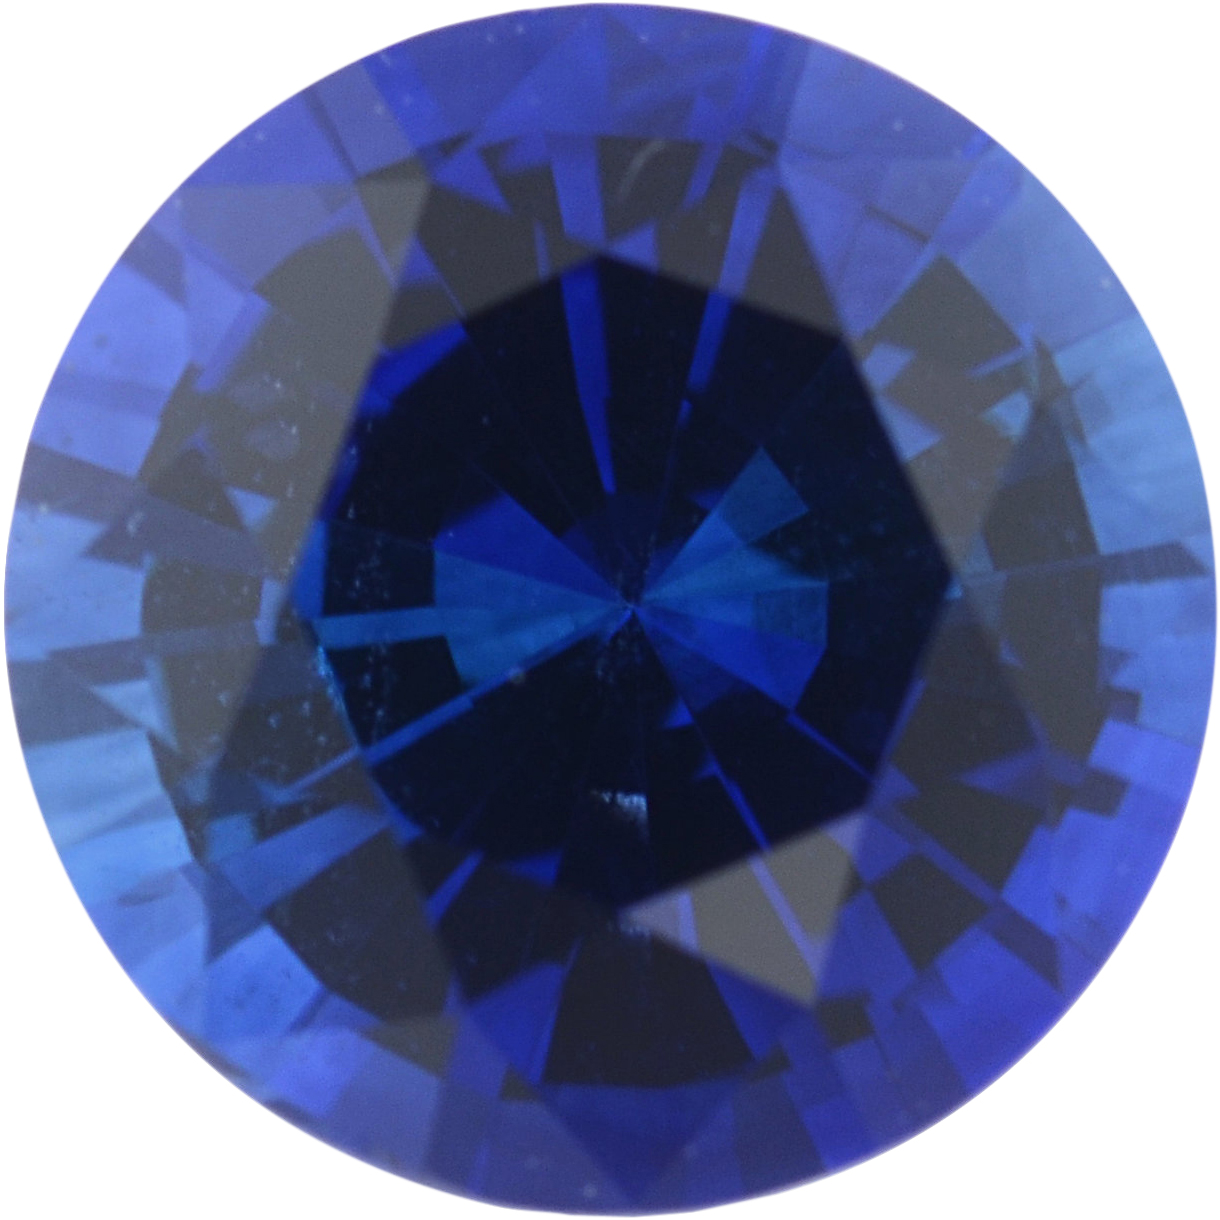 Excellent Sapphire Loose Gem in Round Cut, Medium Violet Blue, 5.92 mm, 0.91 Carats